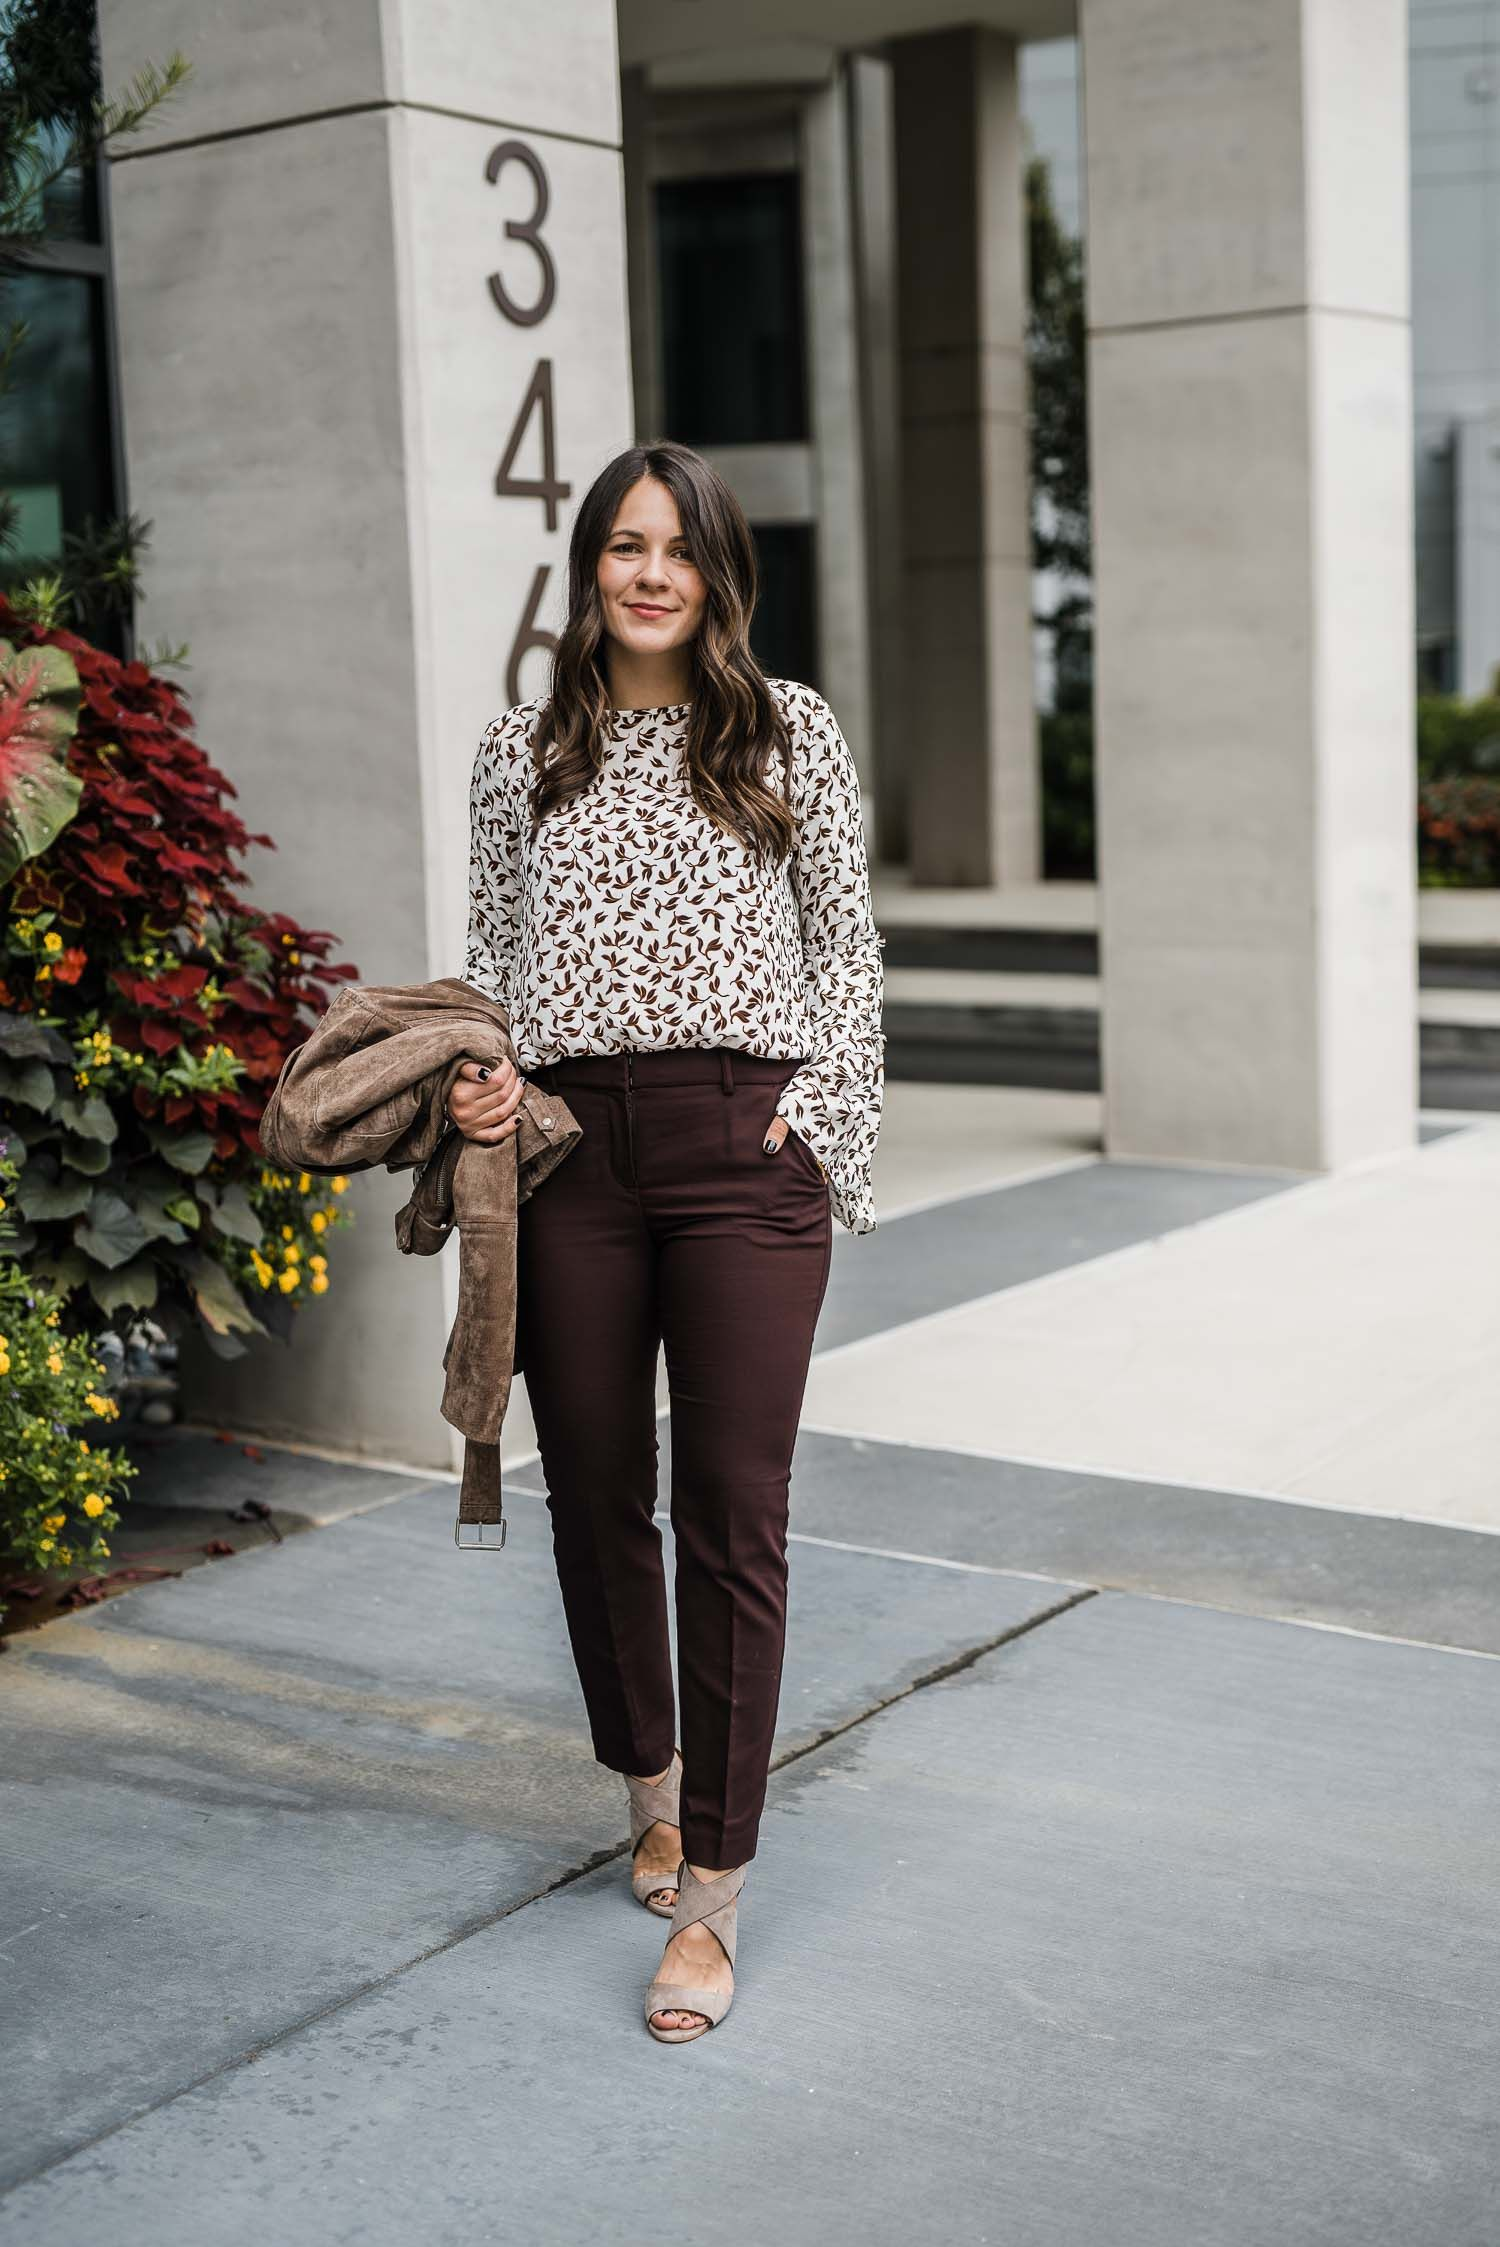 Casual Work Outfit Ideas For Fall | an indigo day Blog | Spring work outfits, Office casual outfit, Casual work outfits